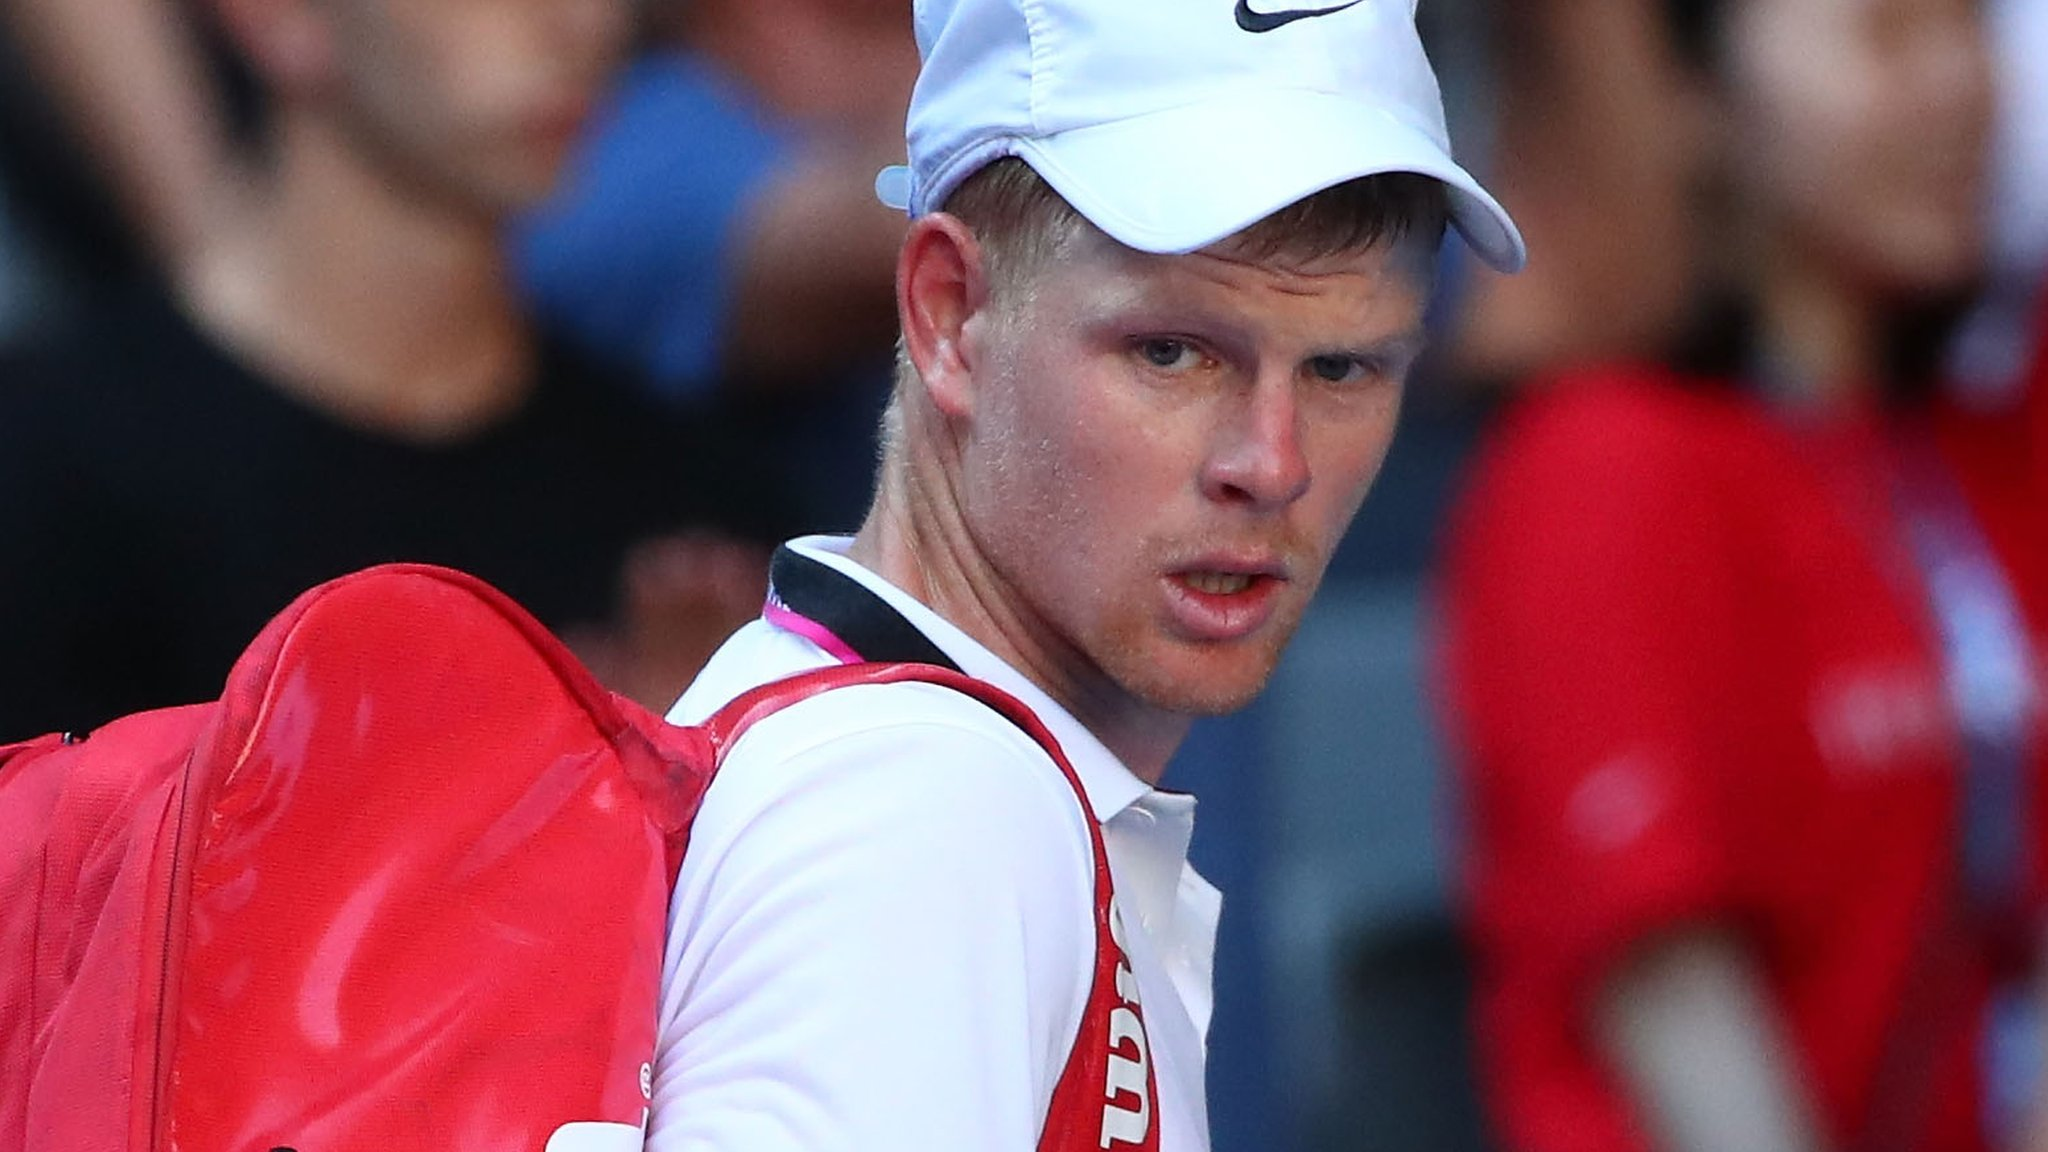 Edmund exits Australian Open in first round